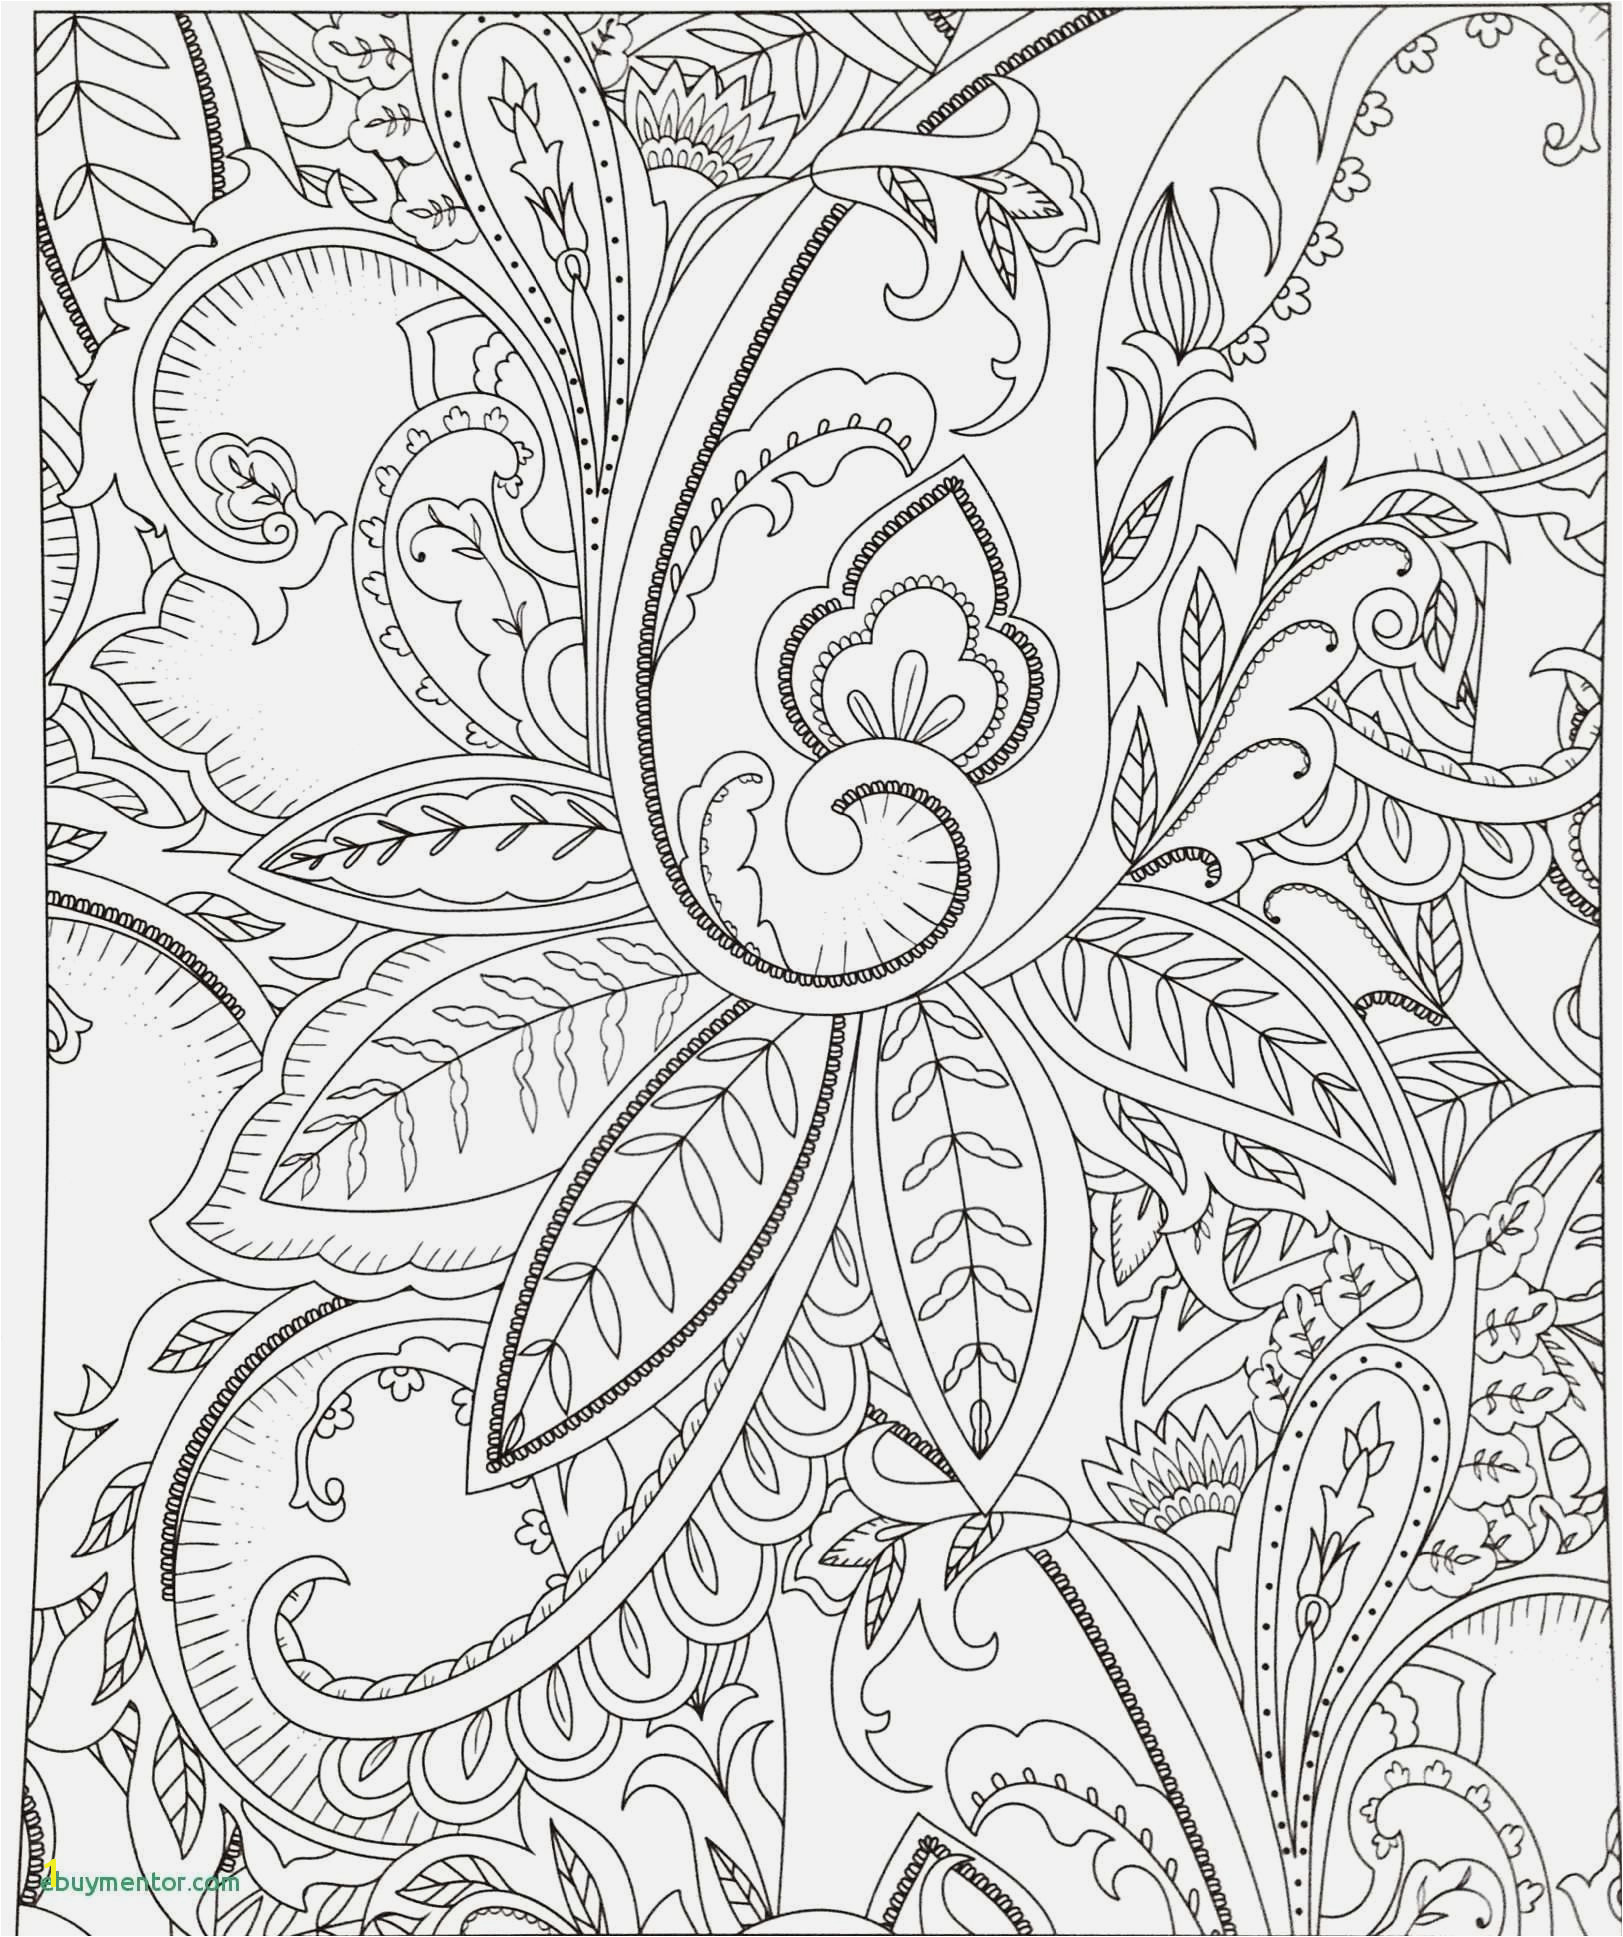 Coloring Pages Horses Pferde Ausmalbilder Beispielbilder Färben Christmas Coloring Pages